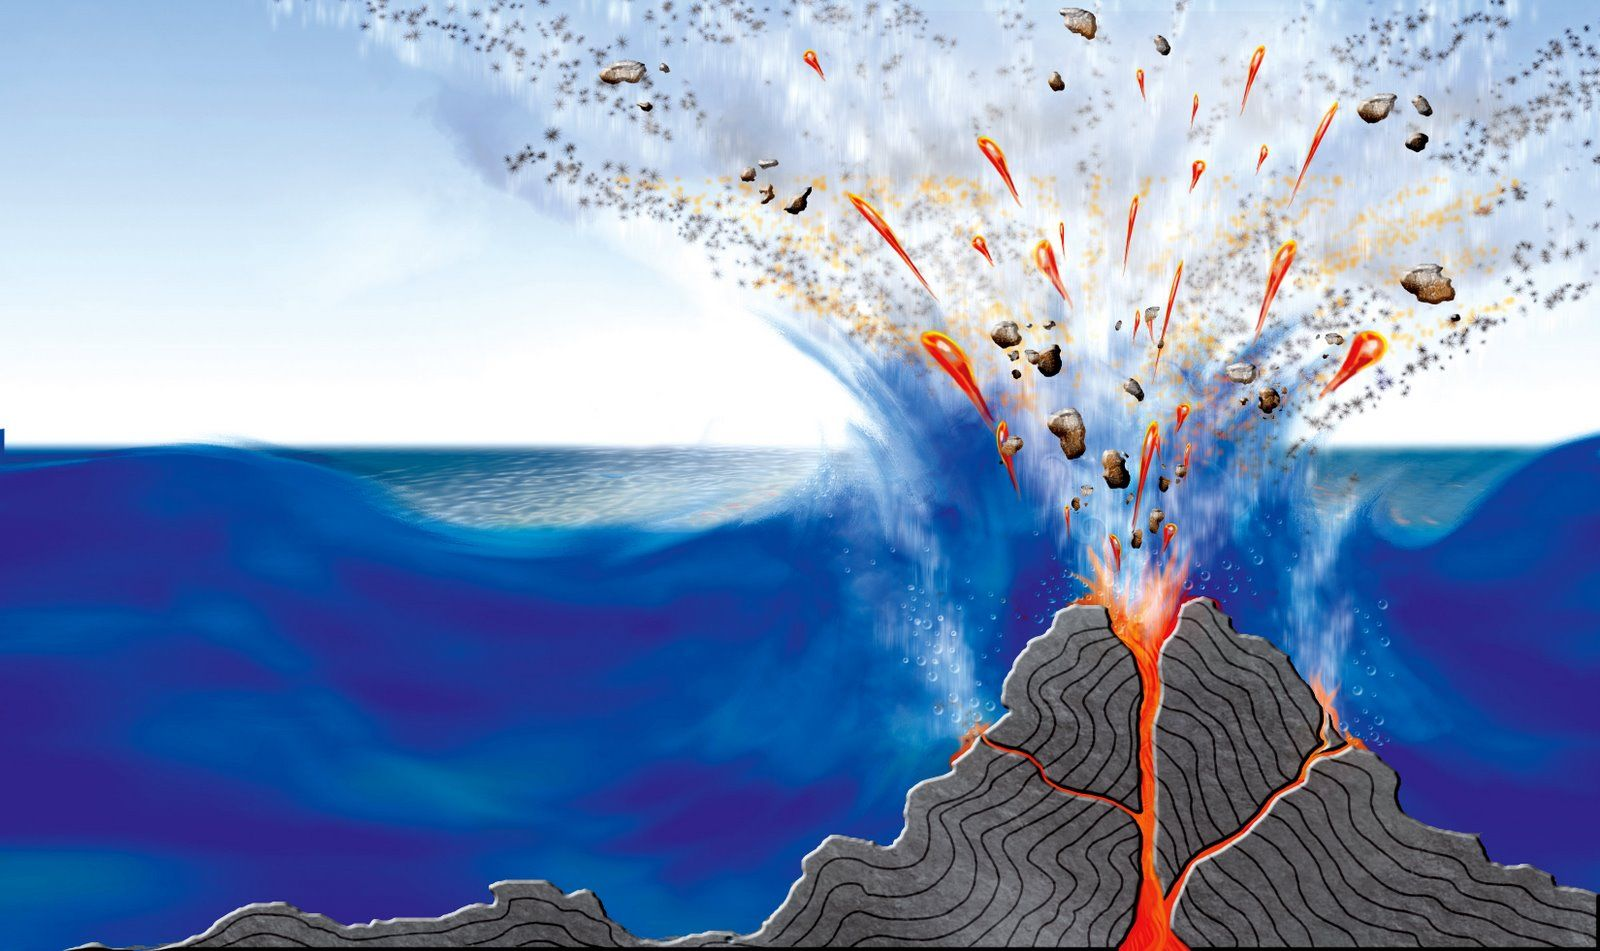 medium resolution of volcanos ocean information school science projects homeschool underwater welt volcanoes